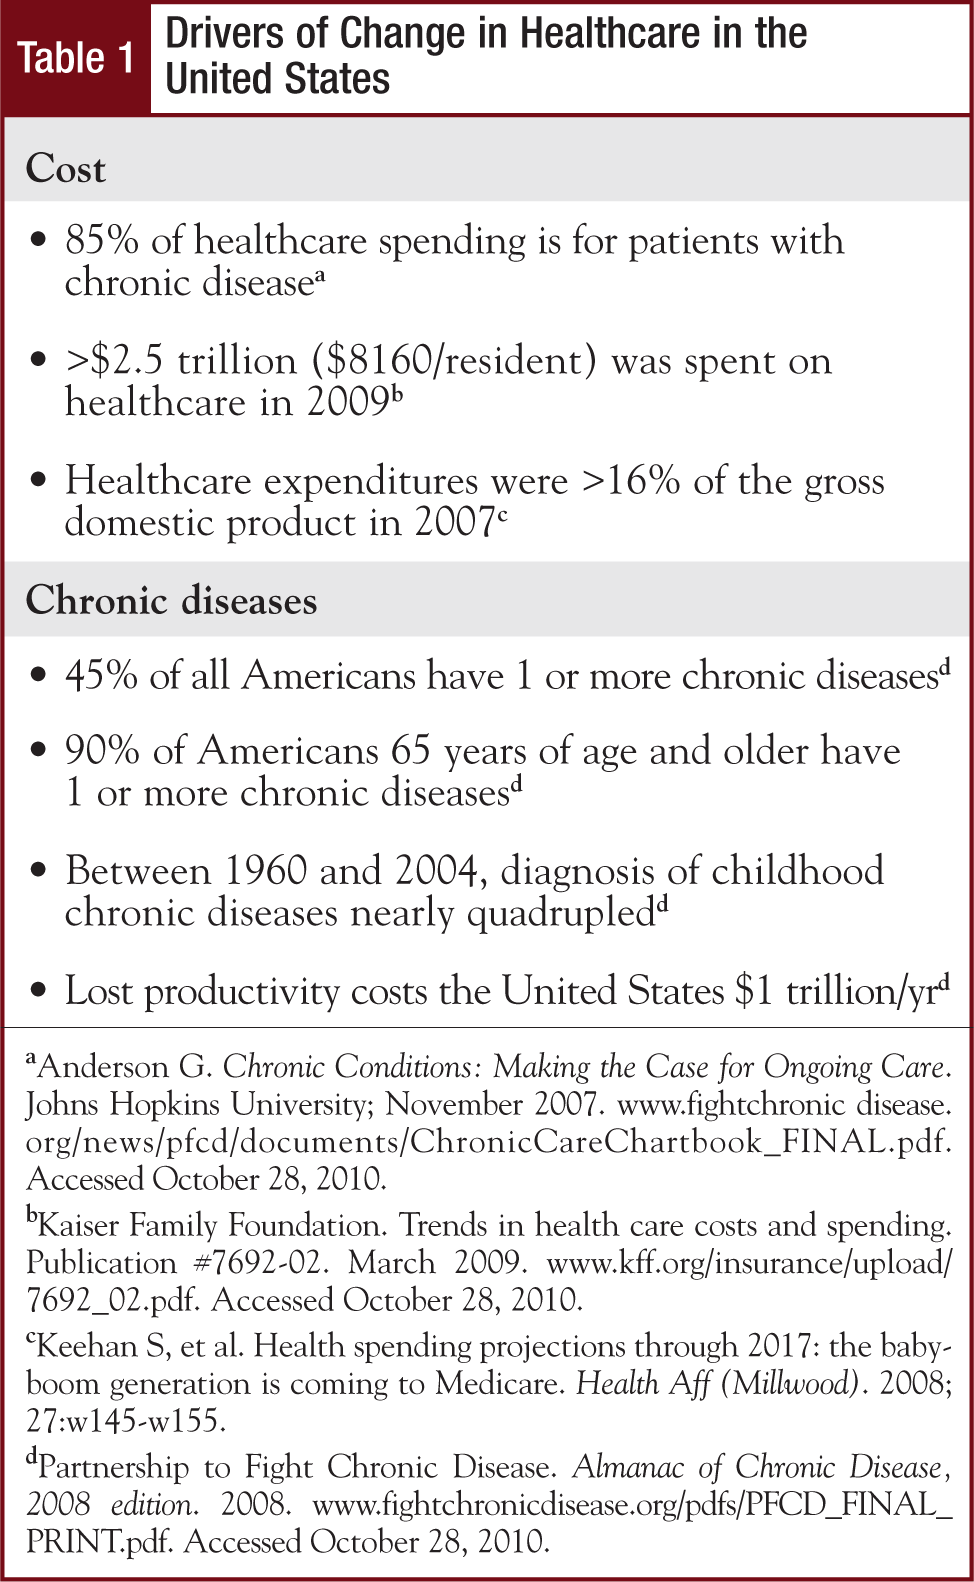 Table 1 - Drivers of Change in Healthcare in theUnited States